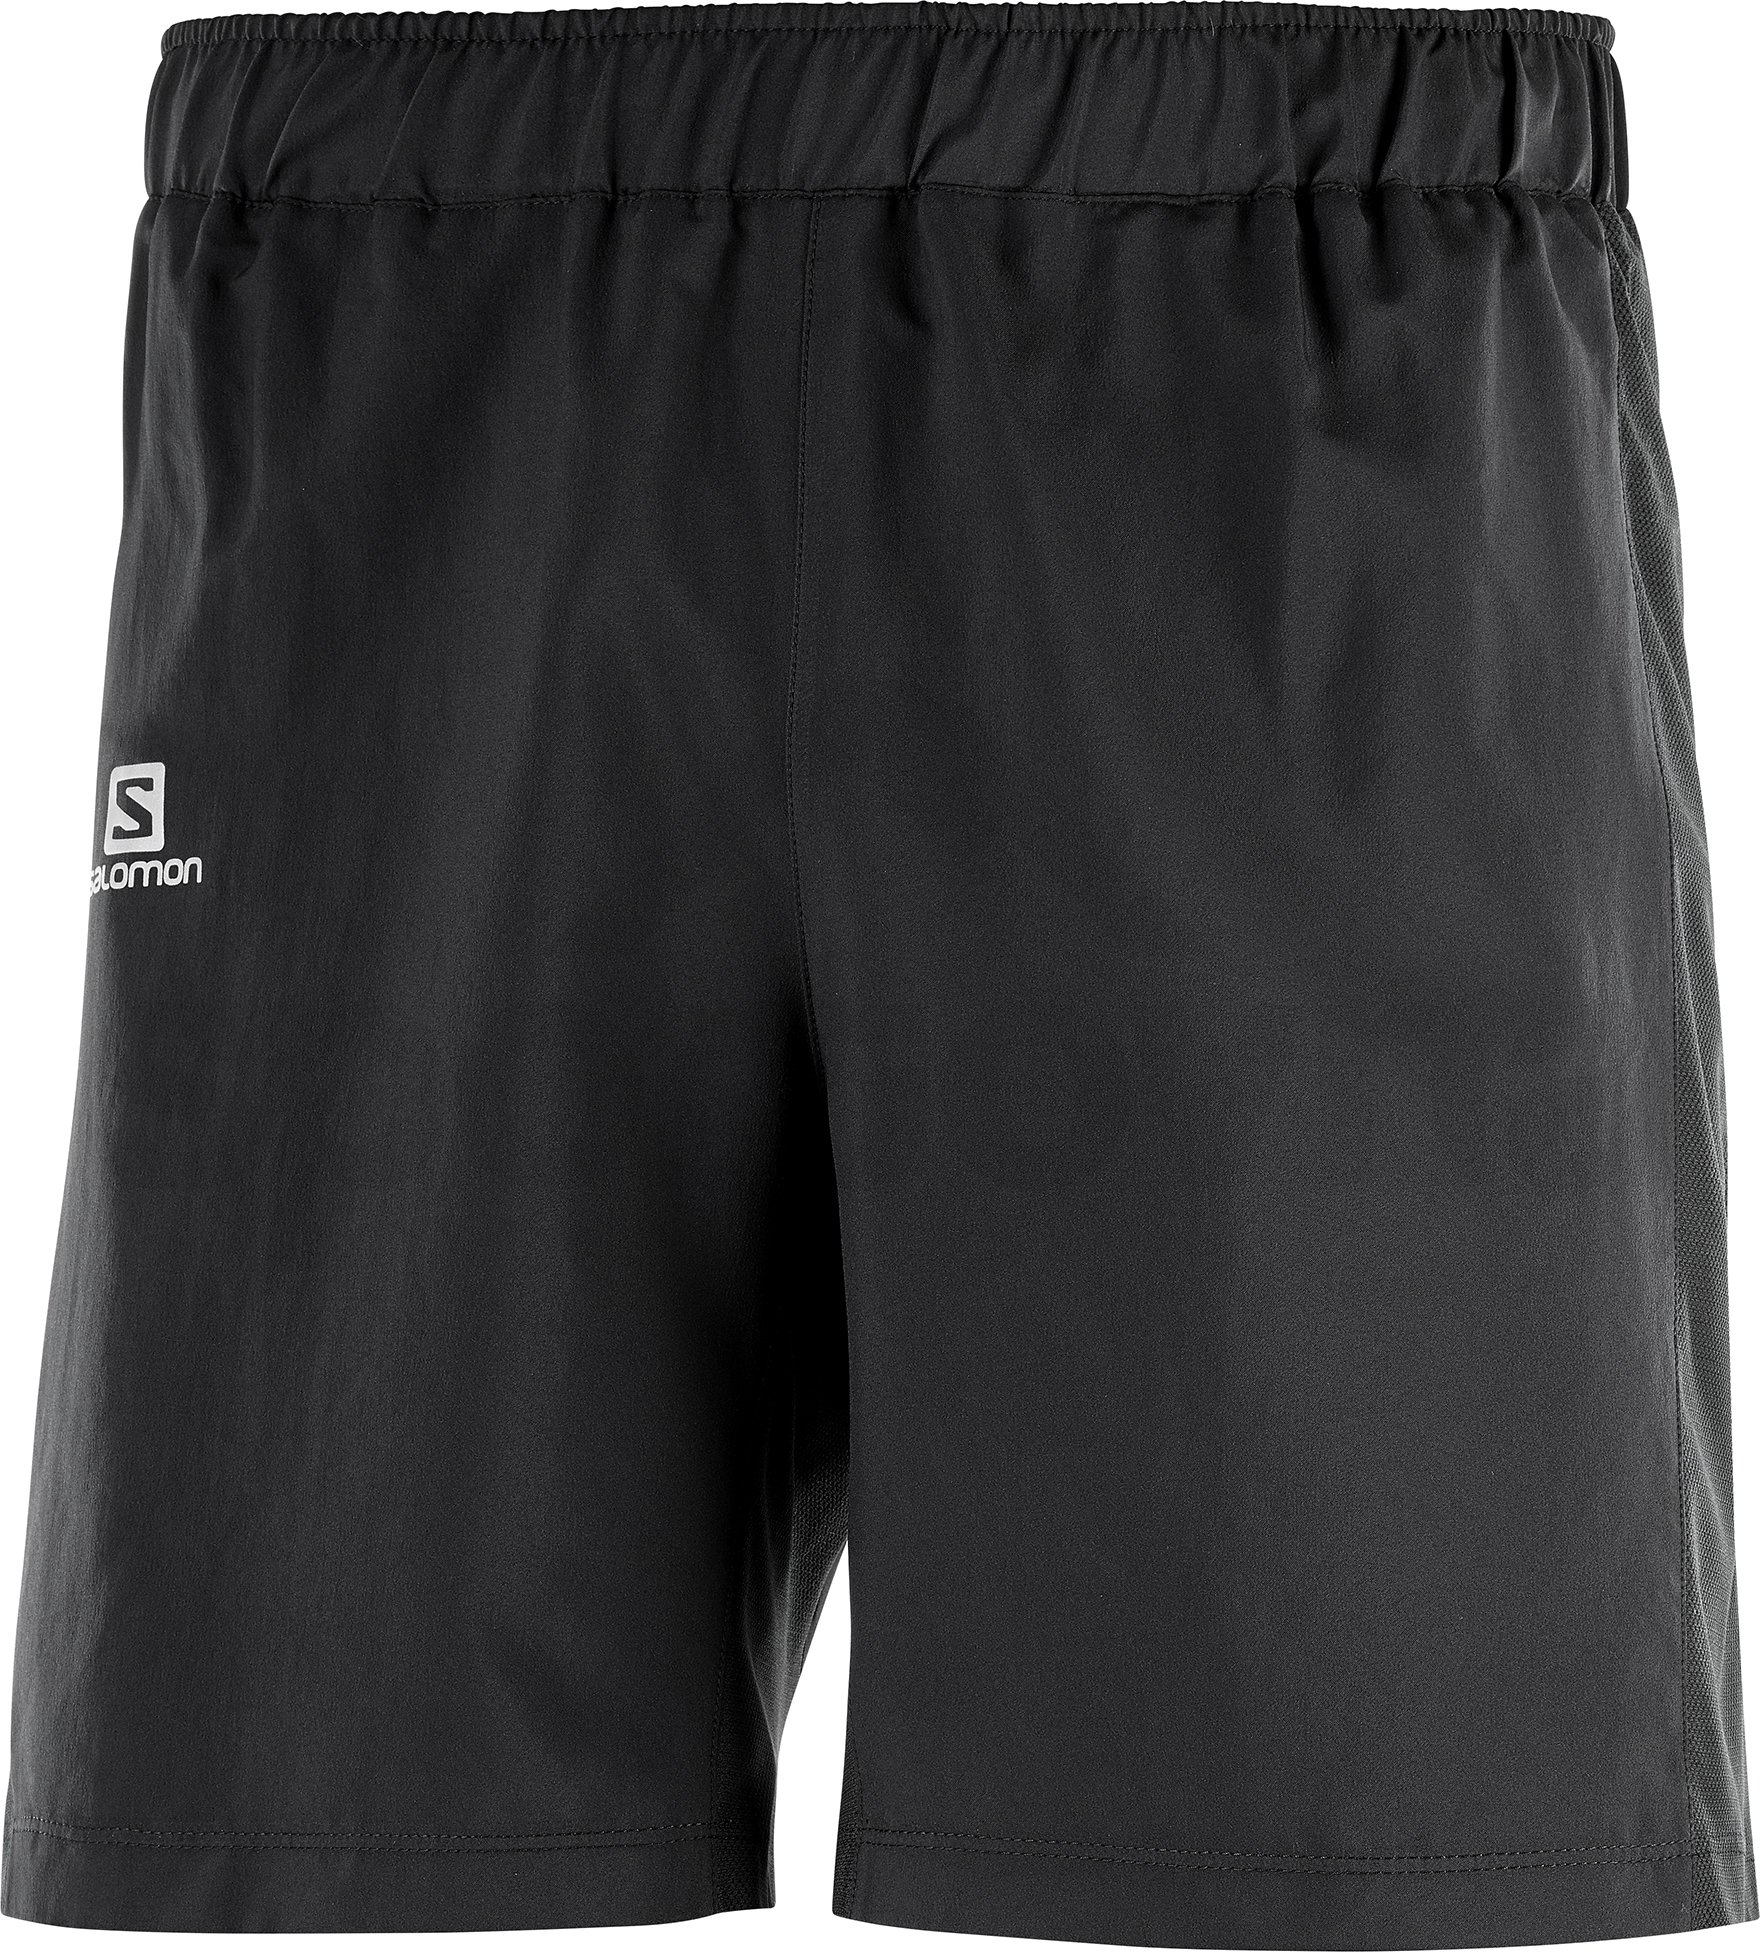 L40118300_0_m_agile7short_black_running.jpg.originalg